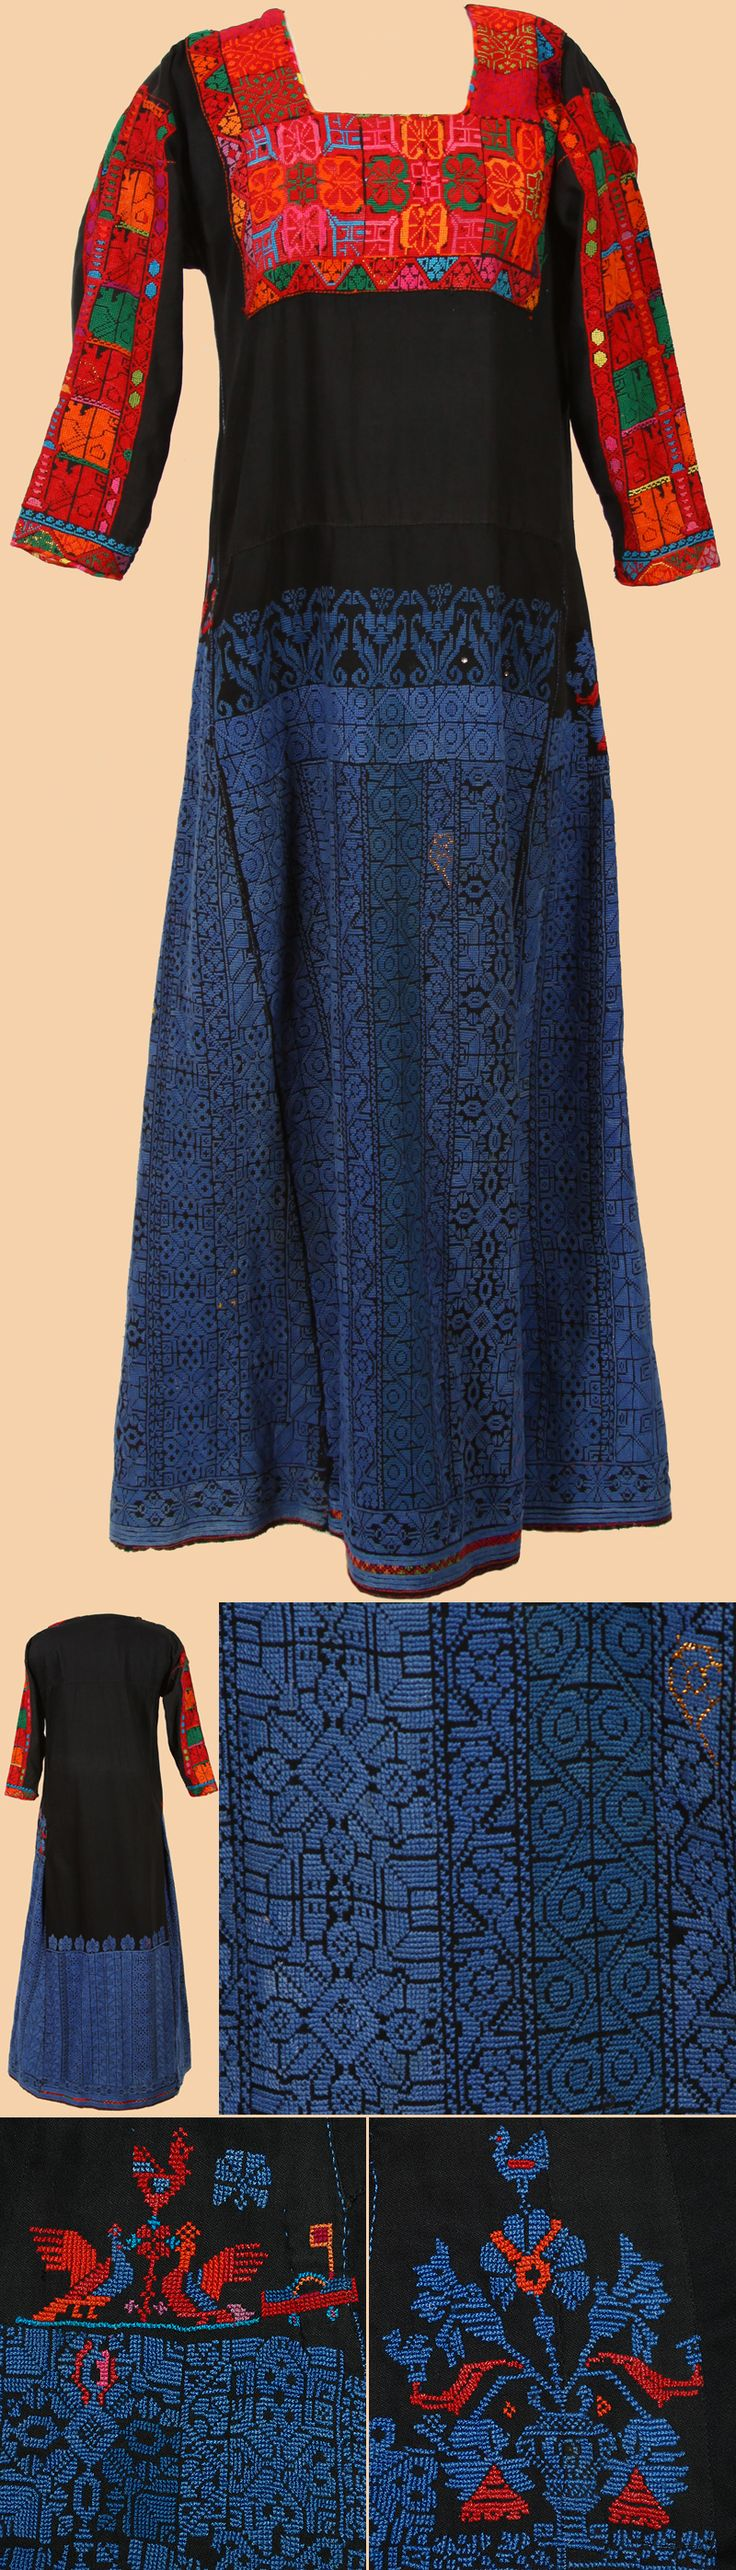 Antique Palestinian Embroidery Dress